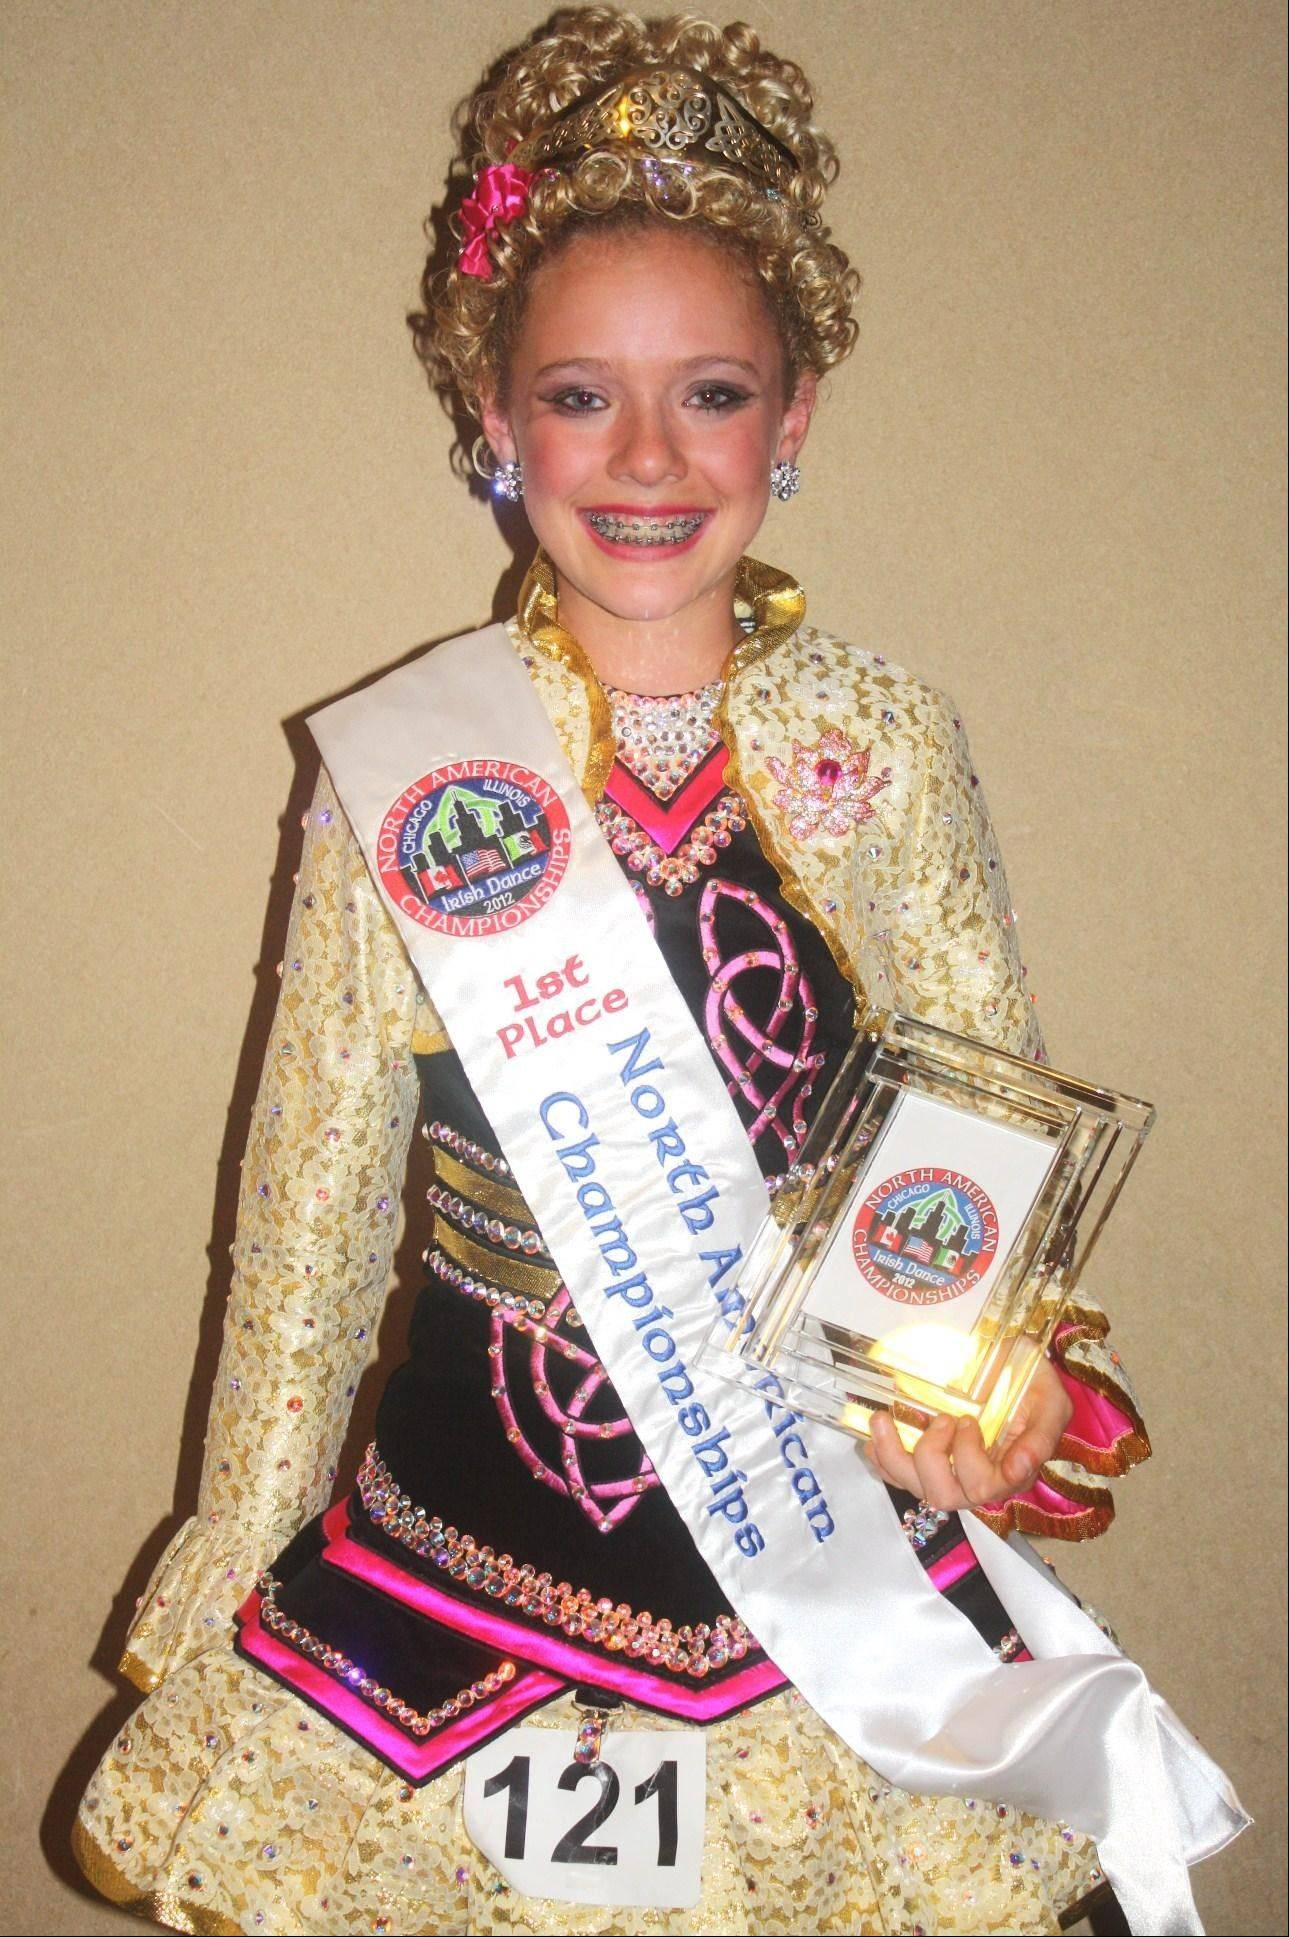 Moira Kramp is the 2012 North American Irish Dance Championships winner in her age group.